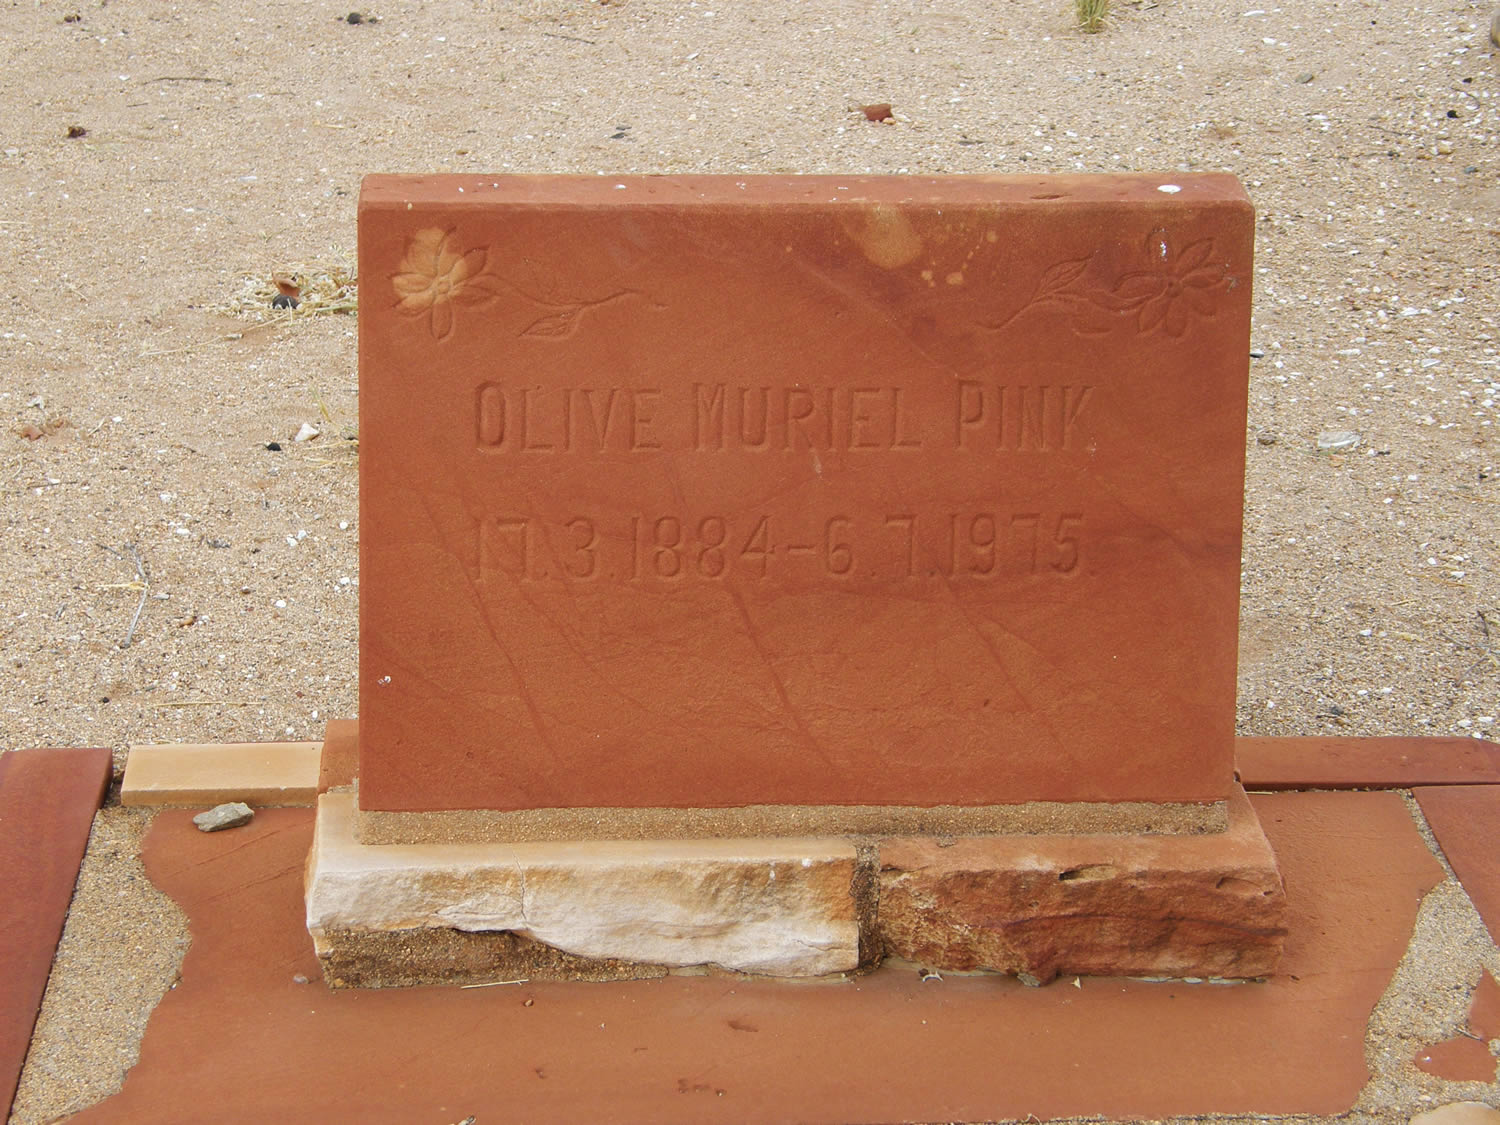 Olive Pink Collection. Photographs of Olive Pink's grave in Alice Springs